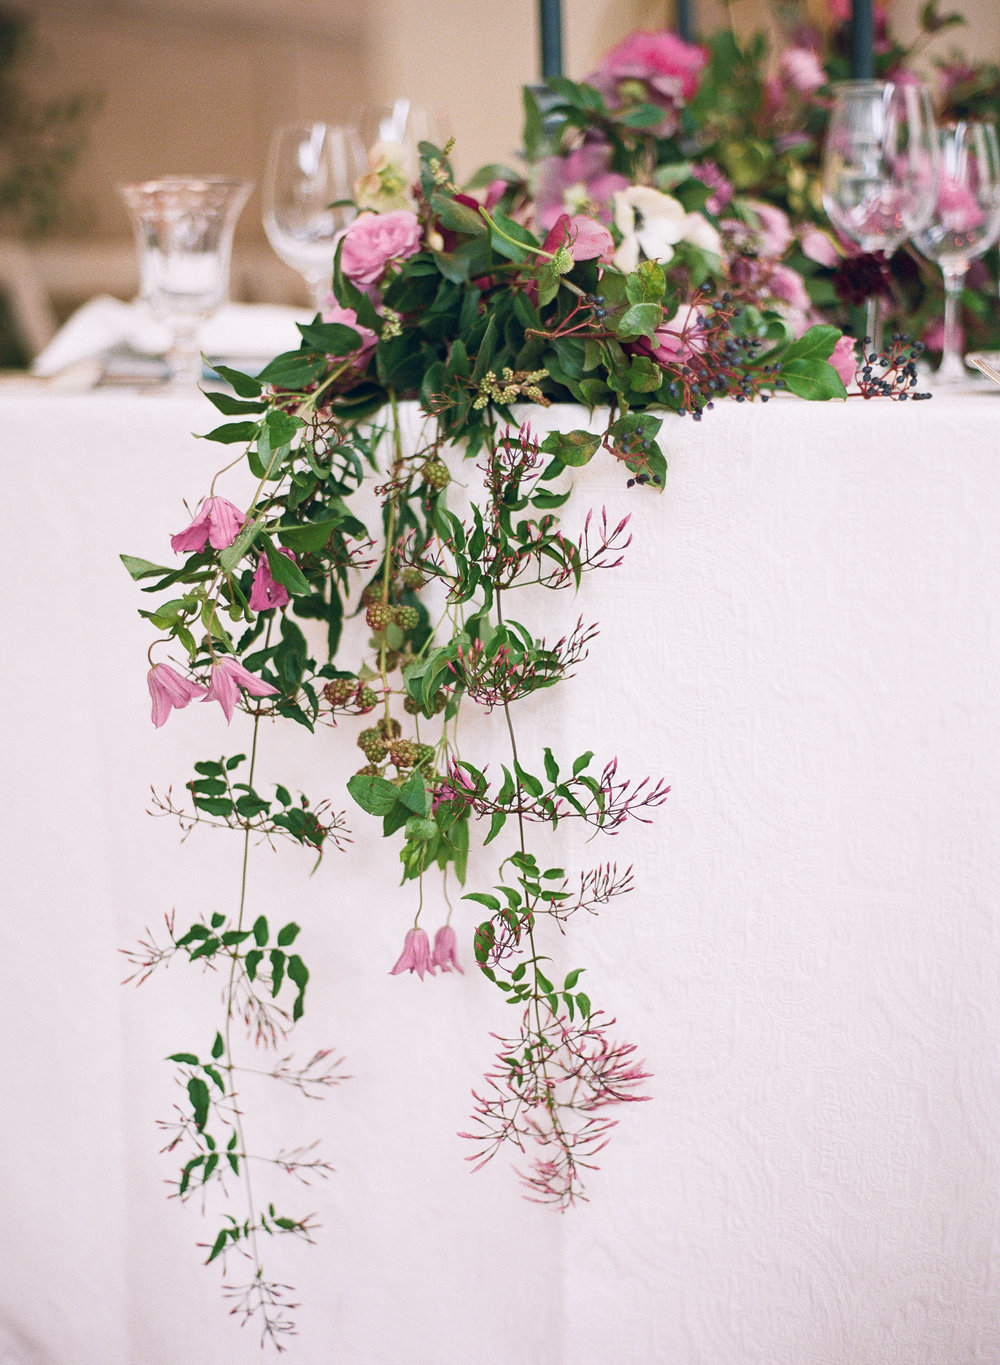 jasmine wedding table garland by Bows and Arrows | The Wildflowers | featured on Style Me Pretty | follow along on instagram: @ thewildflowers_com